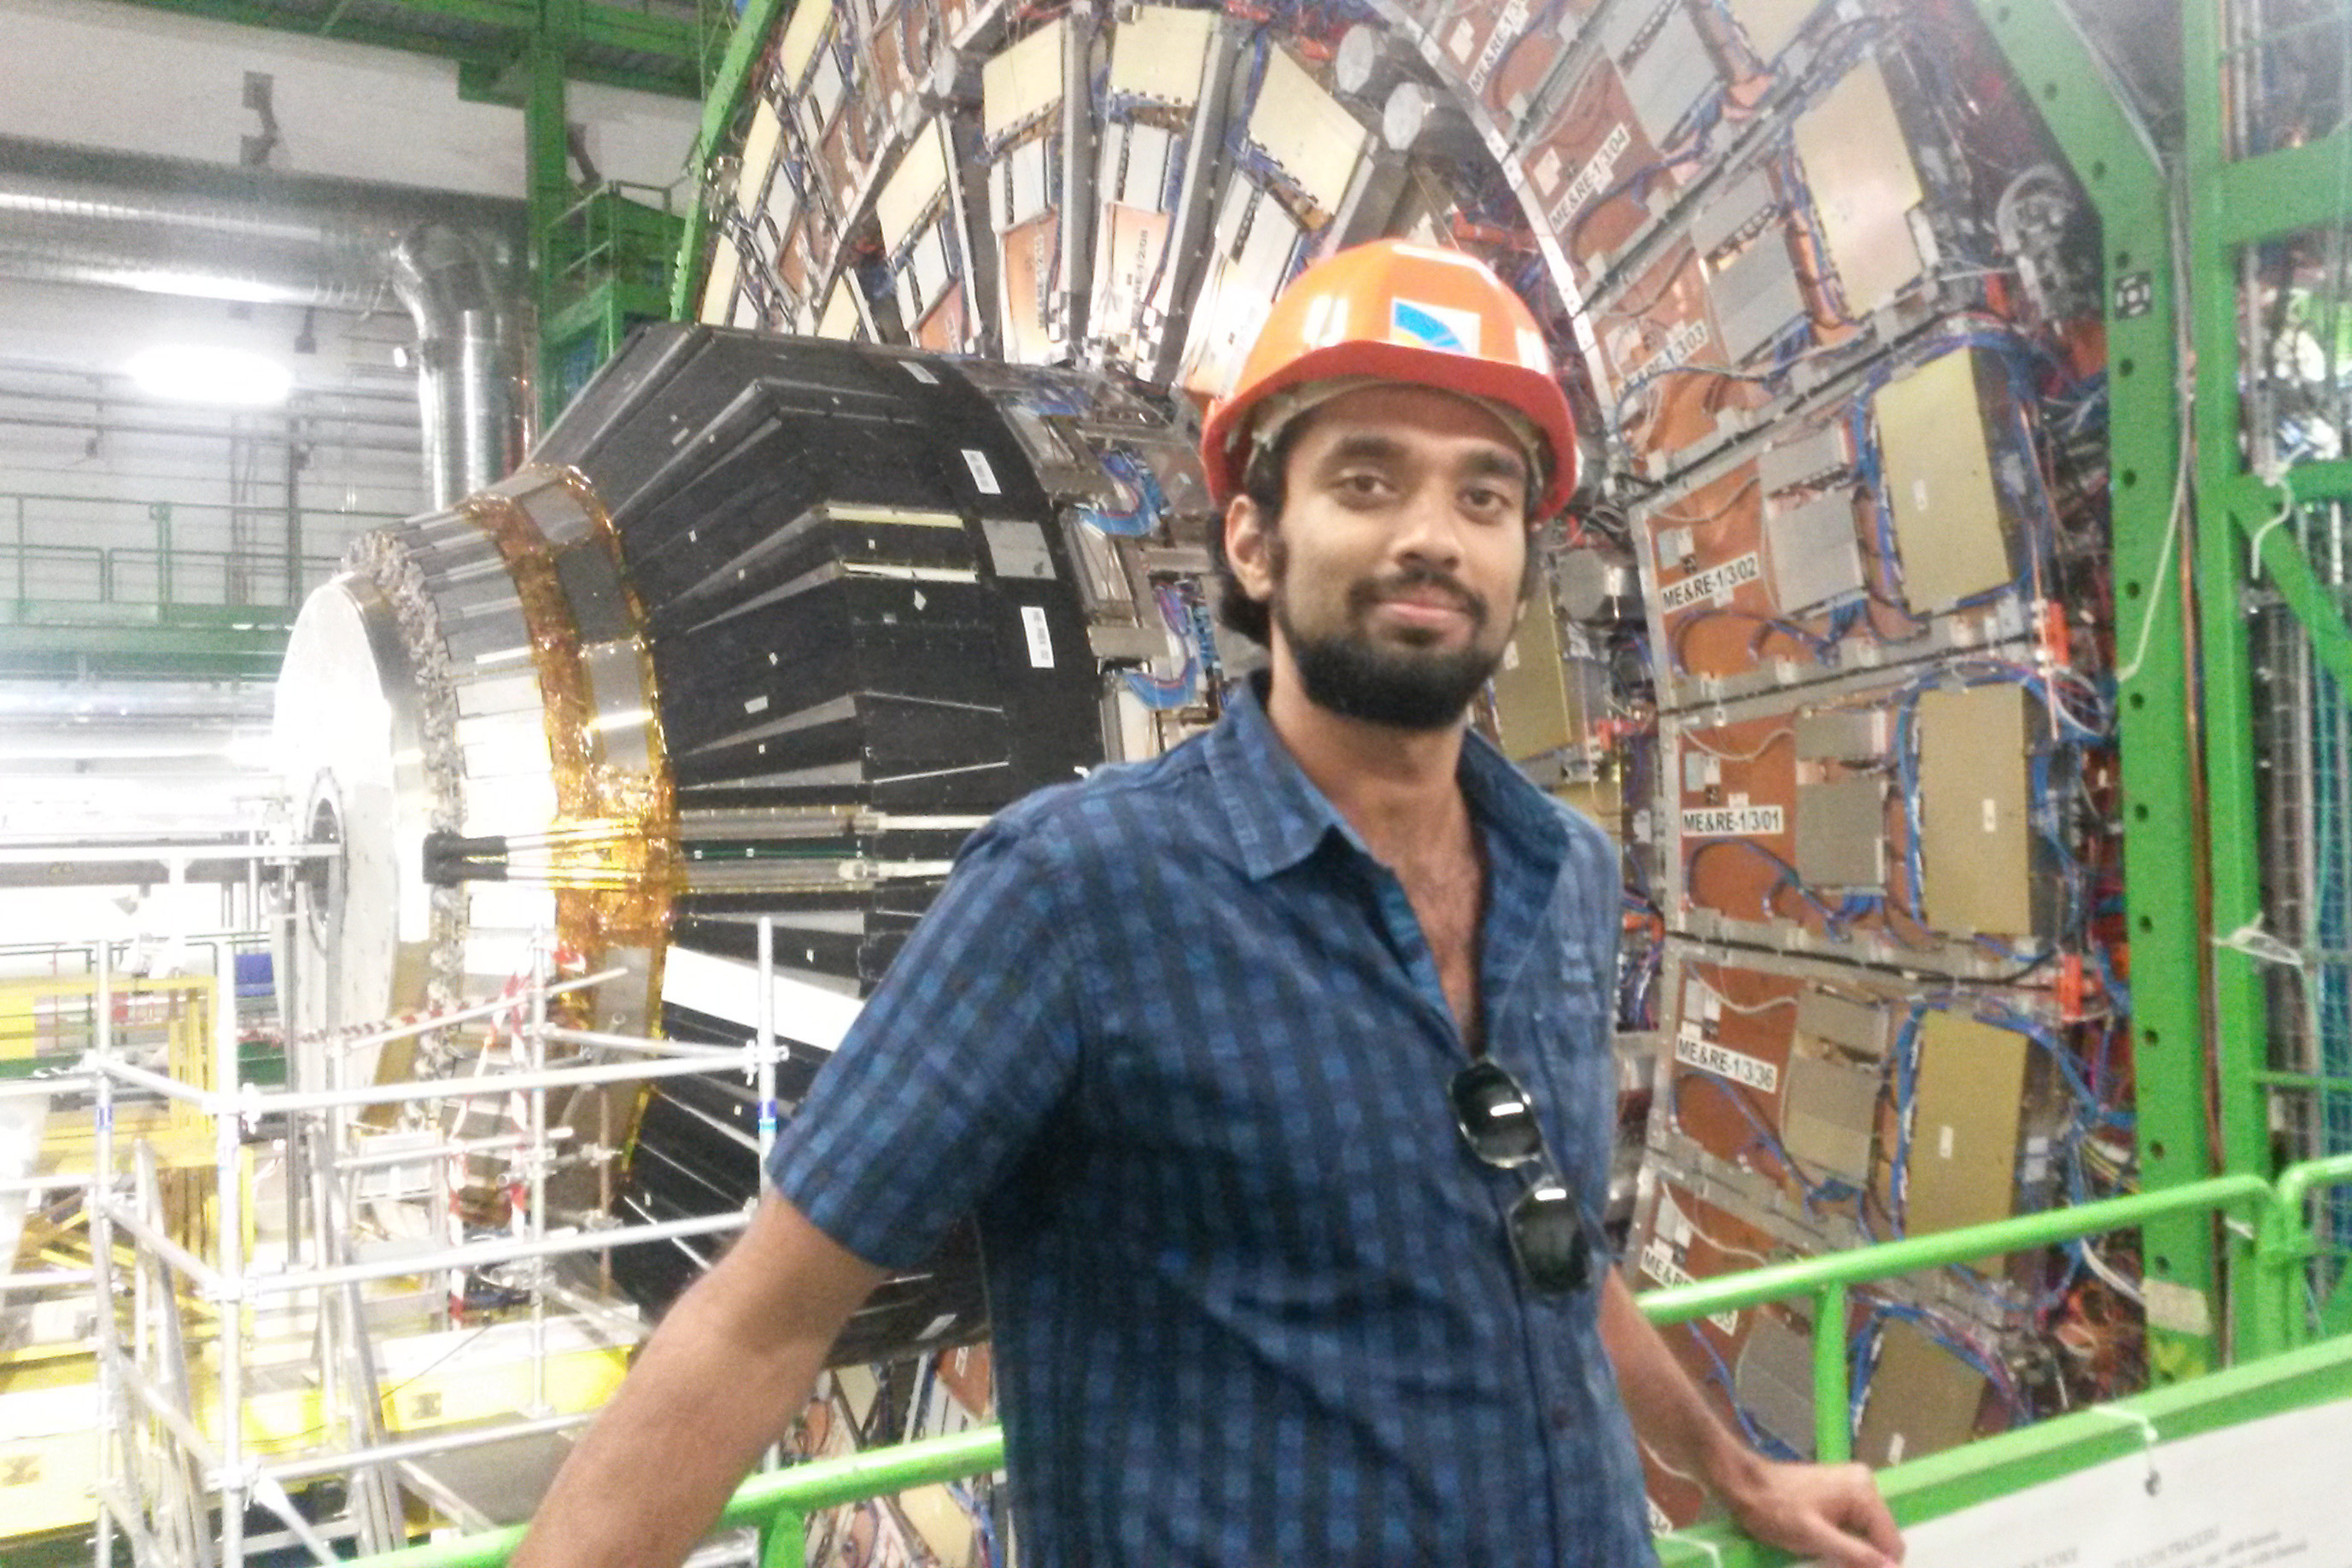 Raghav Kunnawalkam Elayavalli '11 in front of the Compact Muon Solenoid experiment,  one of two large general-purpose particle physics detectors built on the Large Hadron Collider.